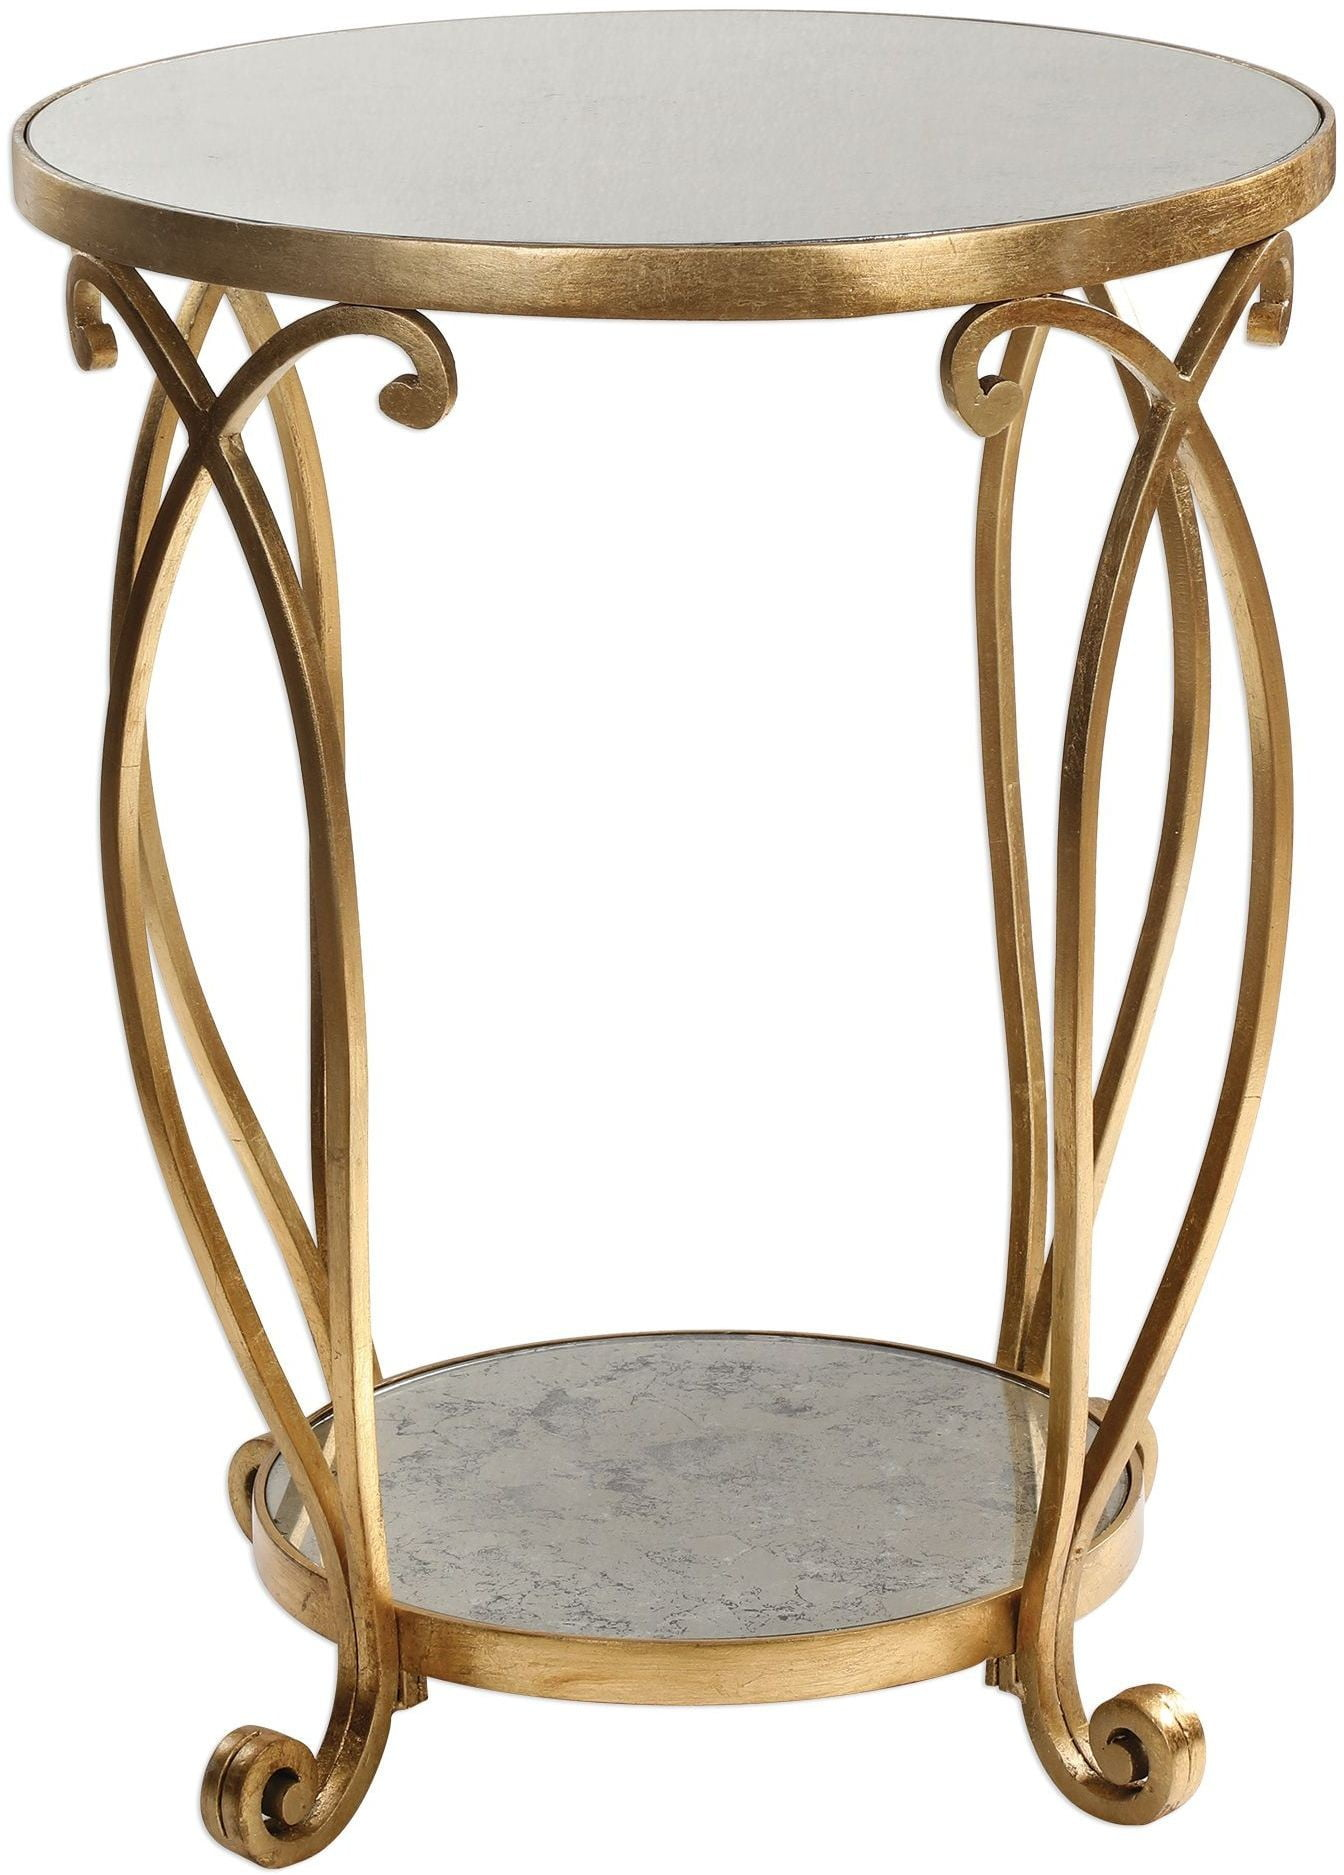 martella round gold accent table from uttermost coleman furniture furn outside and chair covers clear trunk coffee deck end tables ashley chicago wicker small entryway cabinet